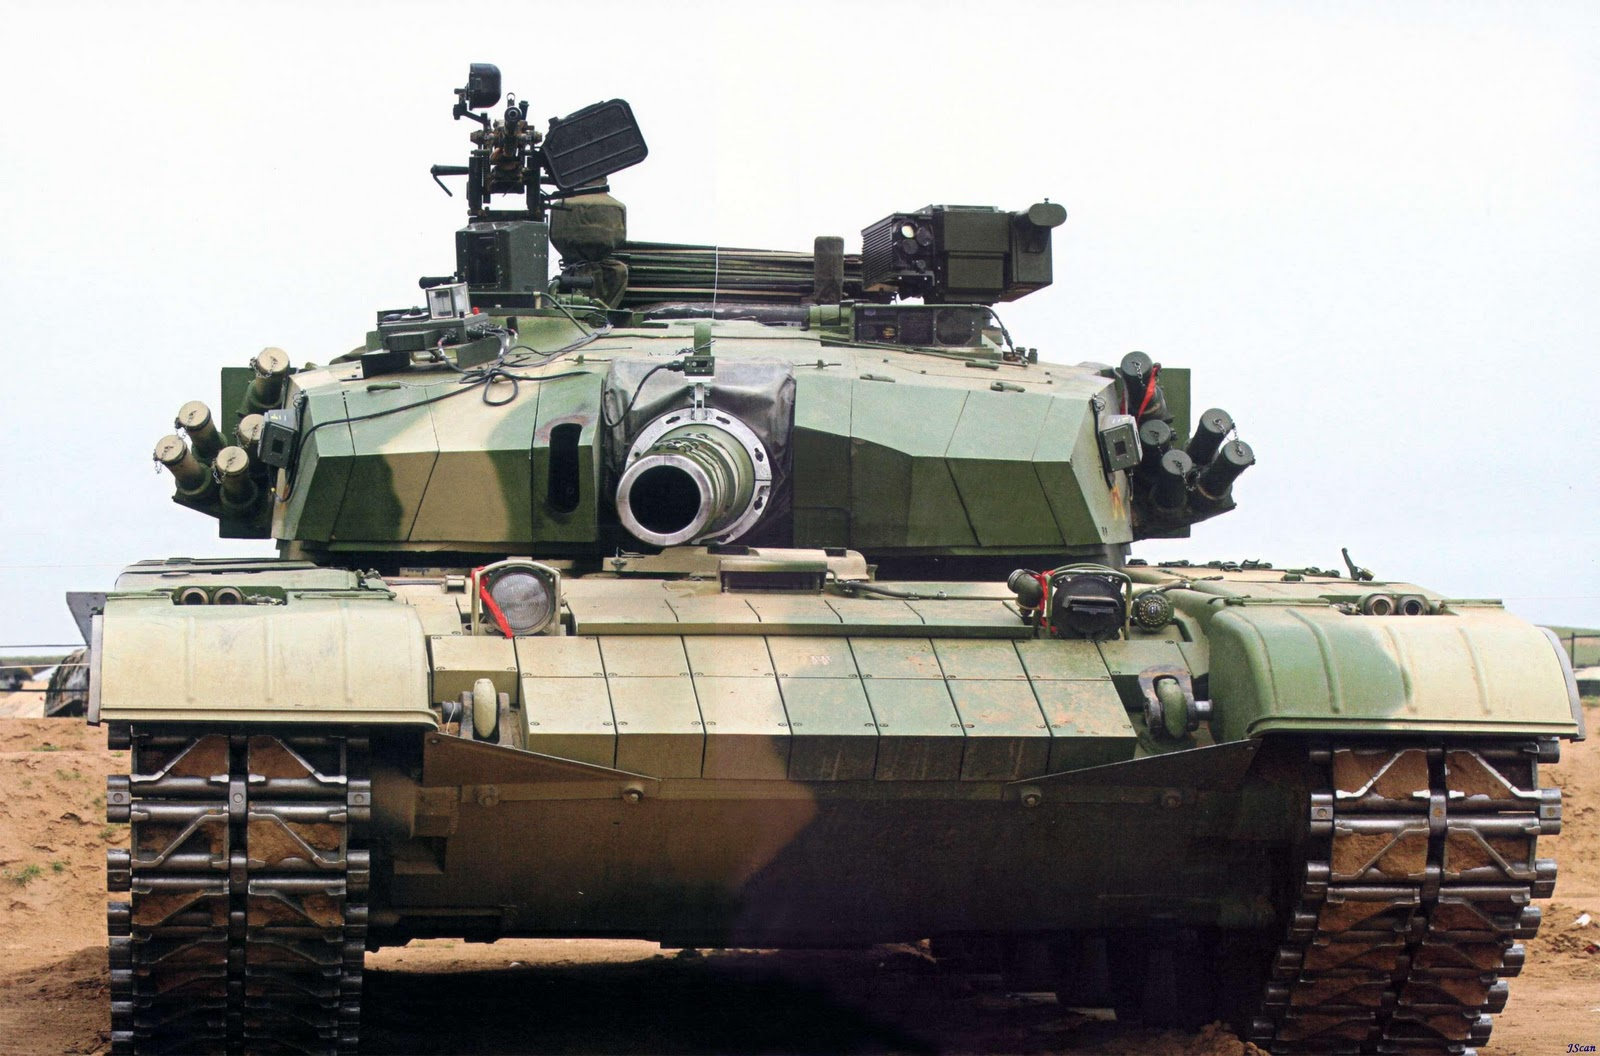 People's liberation army ztz-99 (type 99) main battle tank